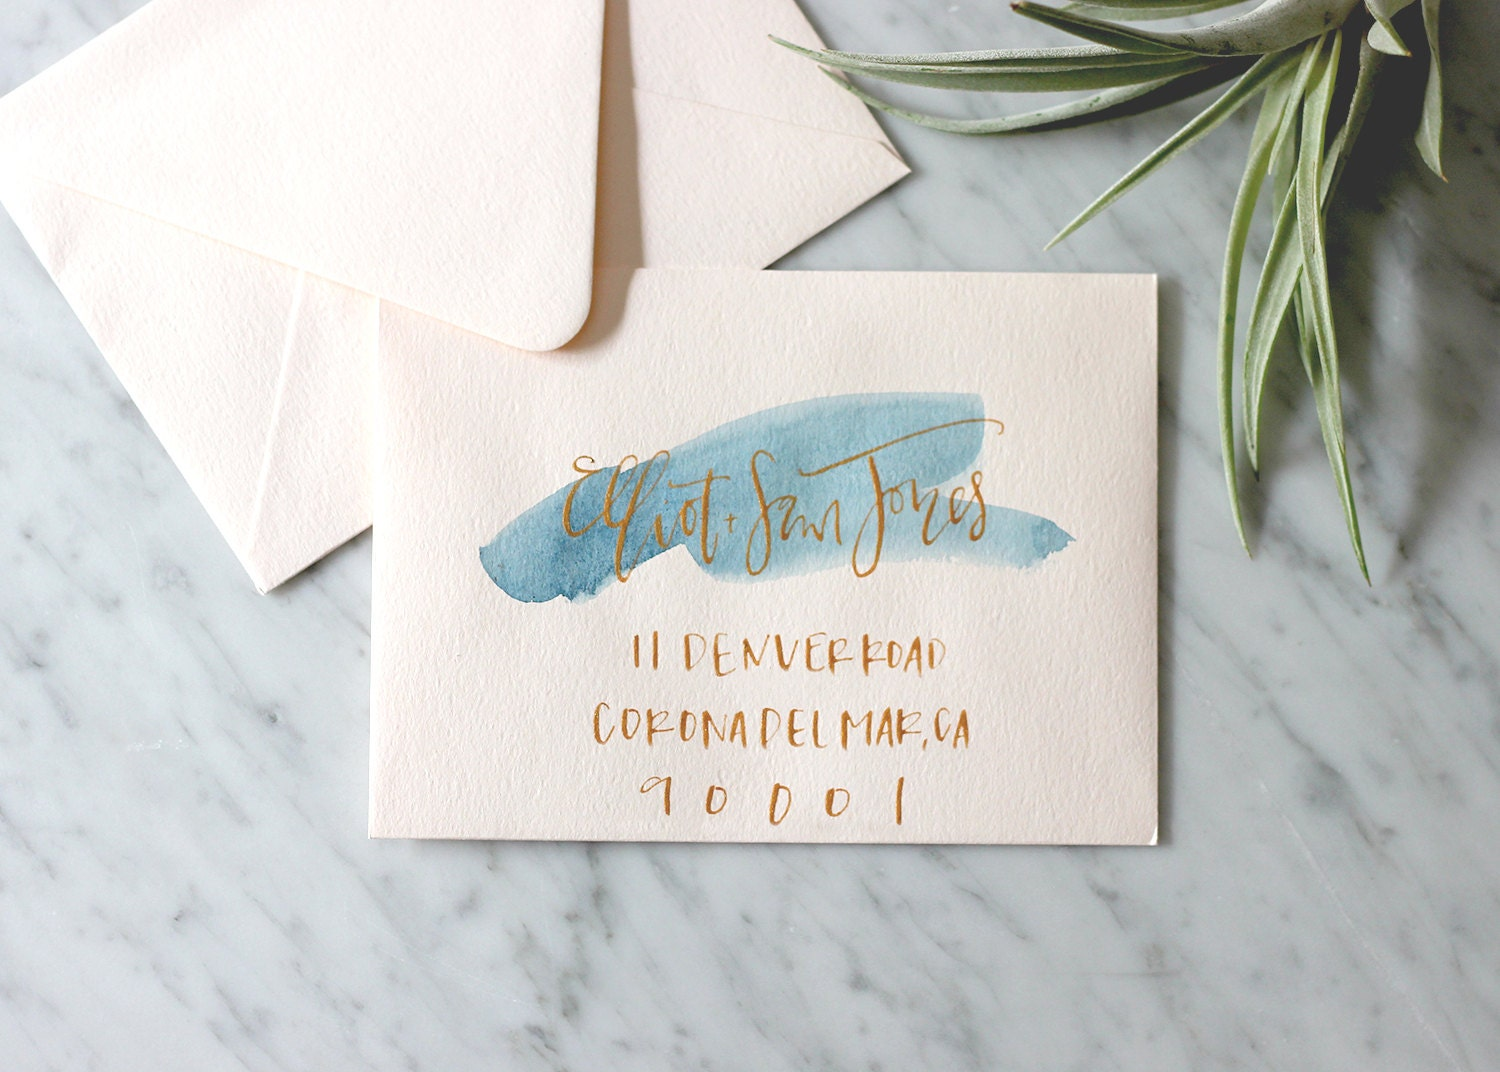 Blush With Navy Wash And Gold Ink Hand Lettering By